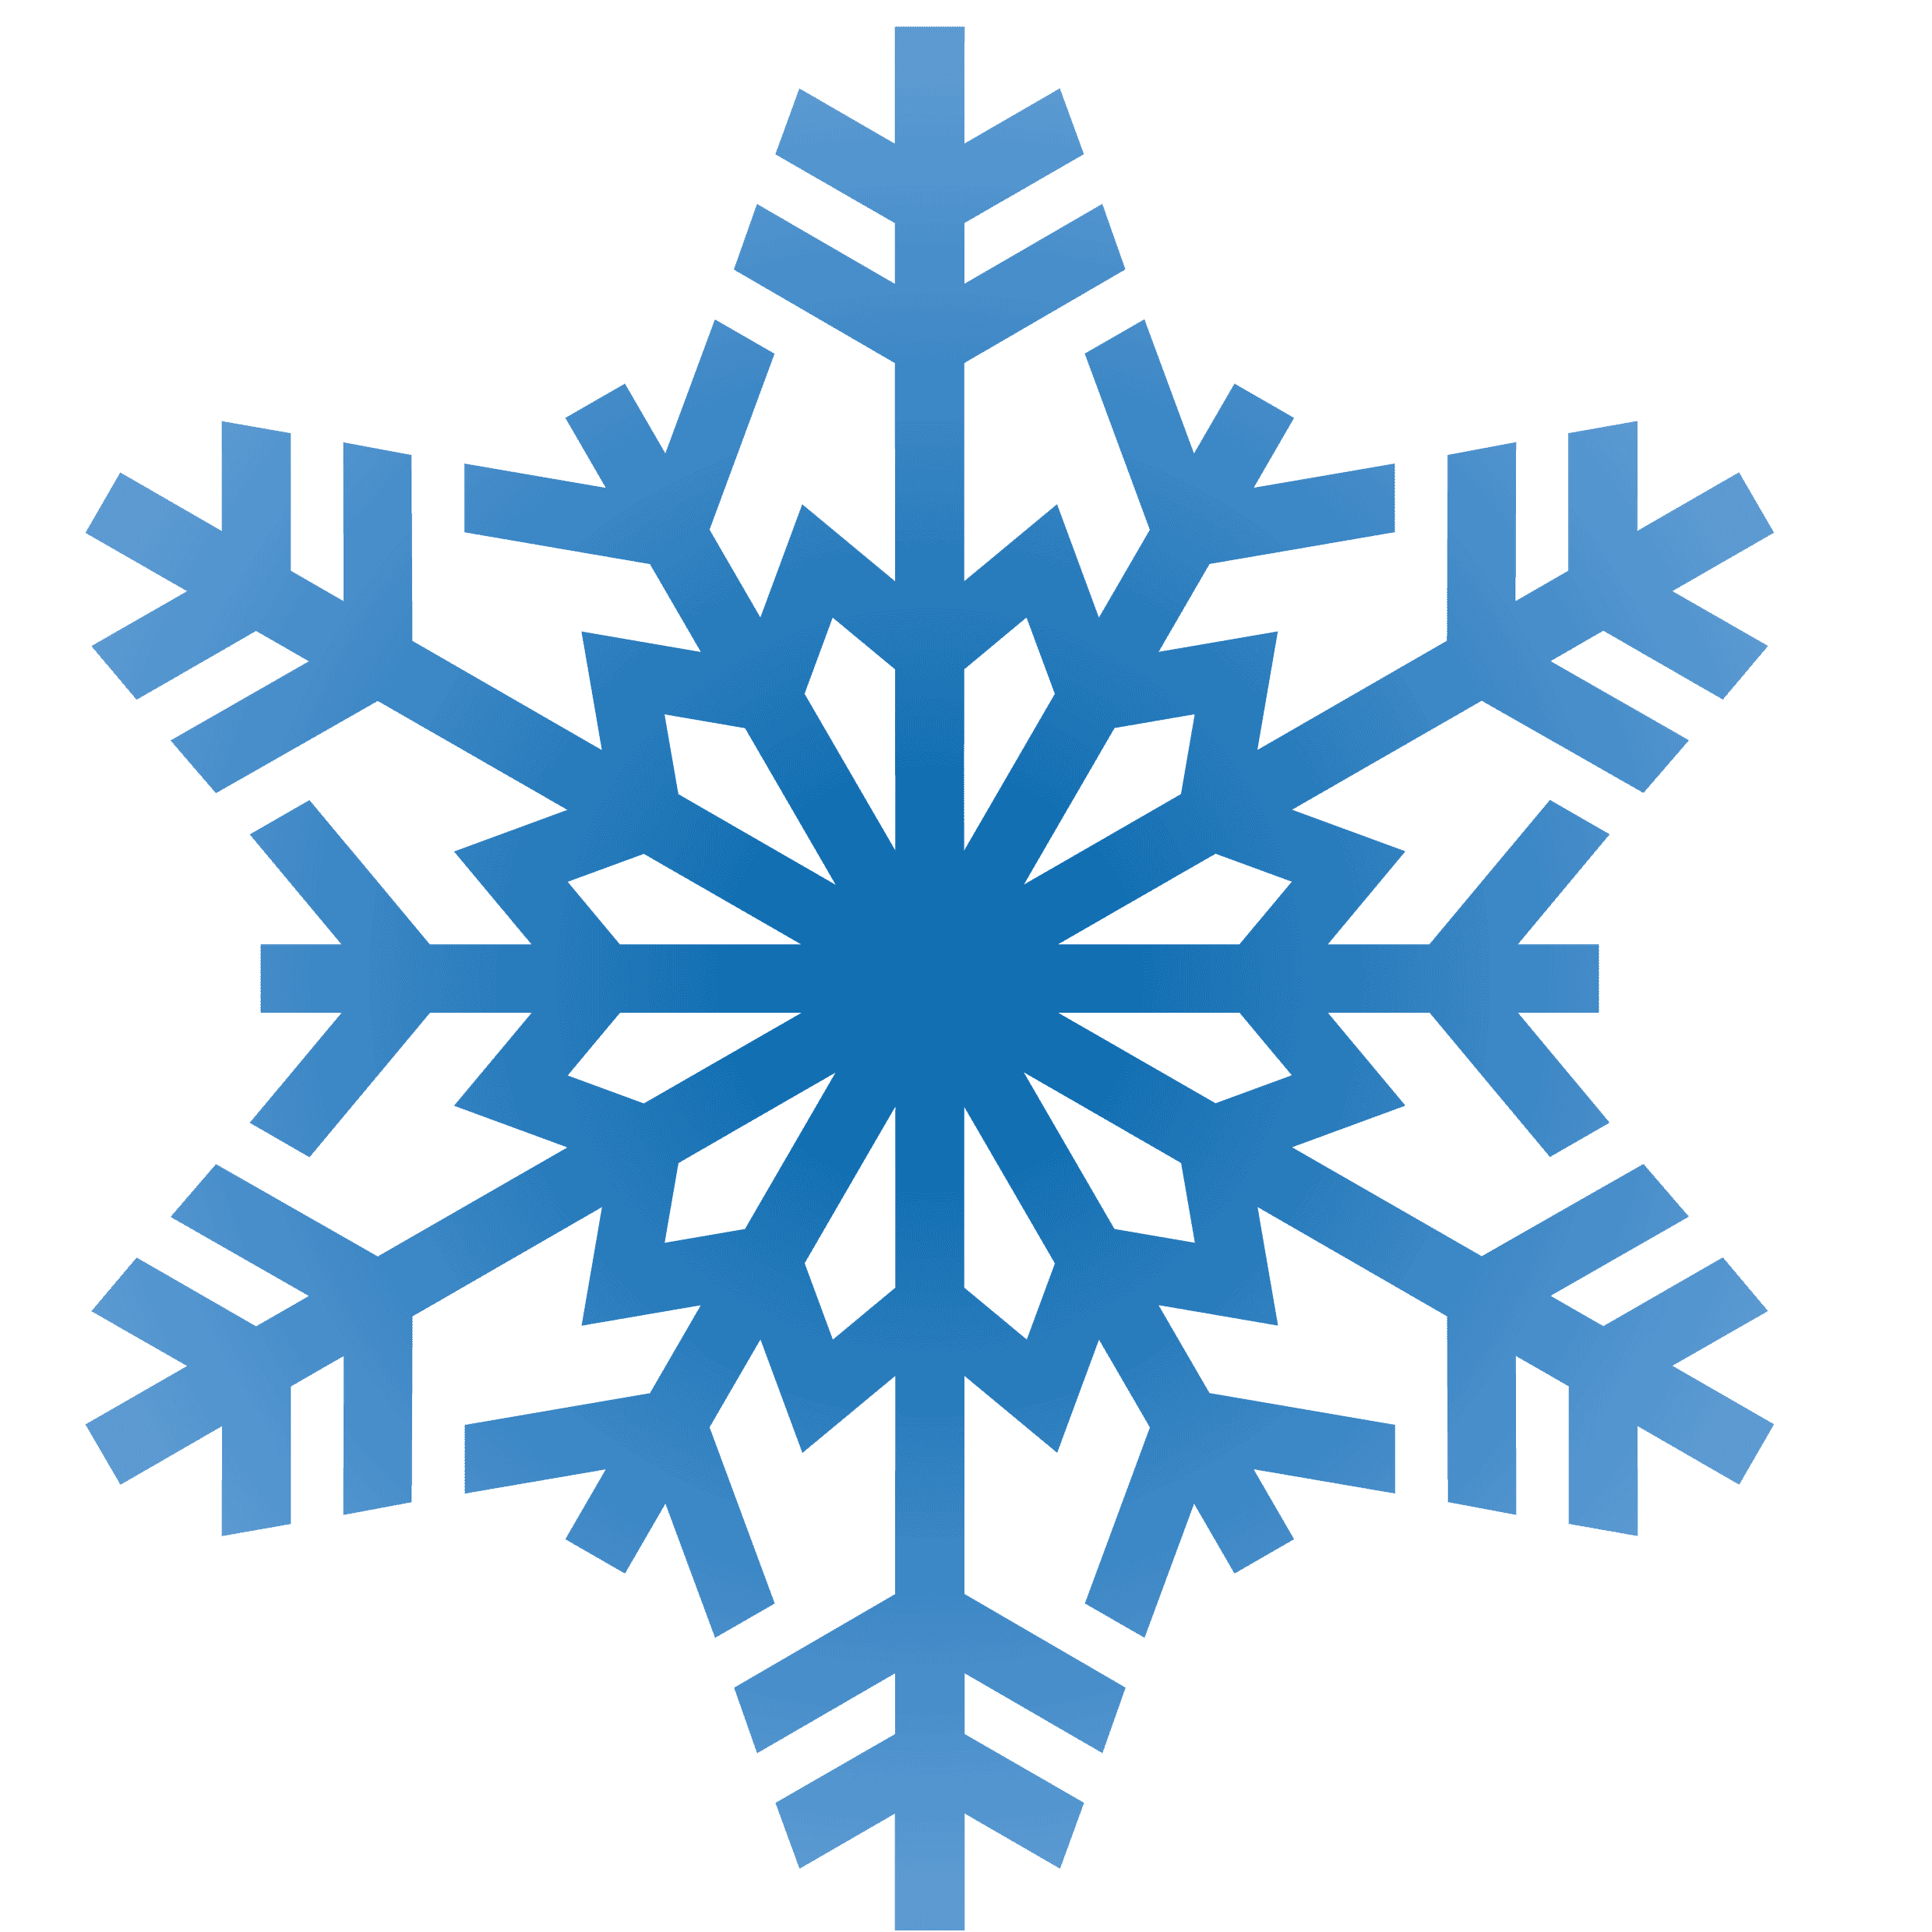 2480x2480 Snowflakes Snowflake Clipart Transparent Background Free